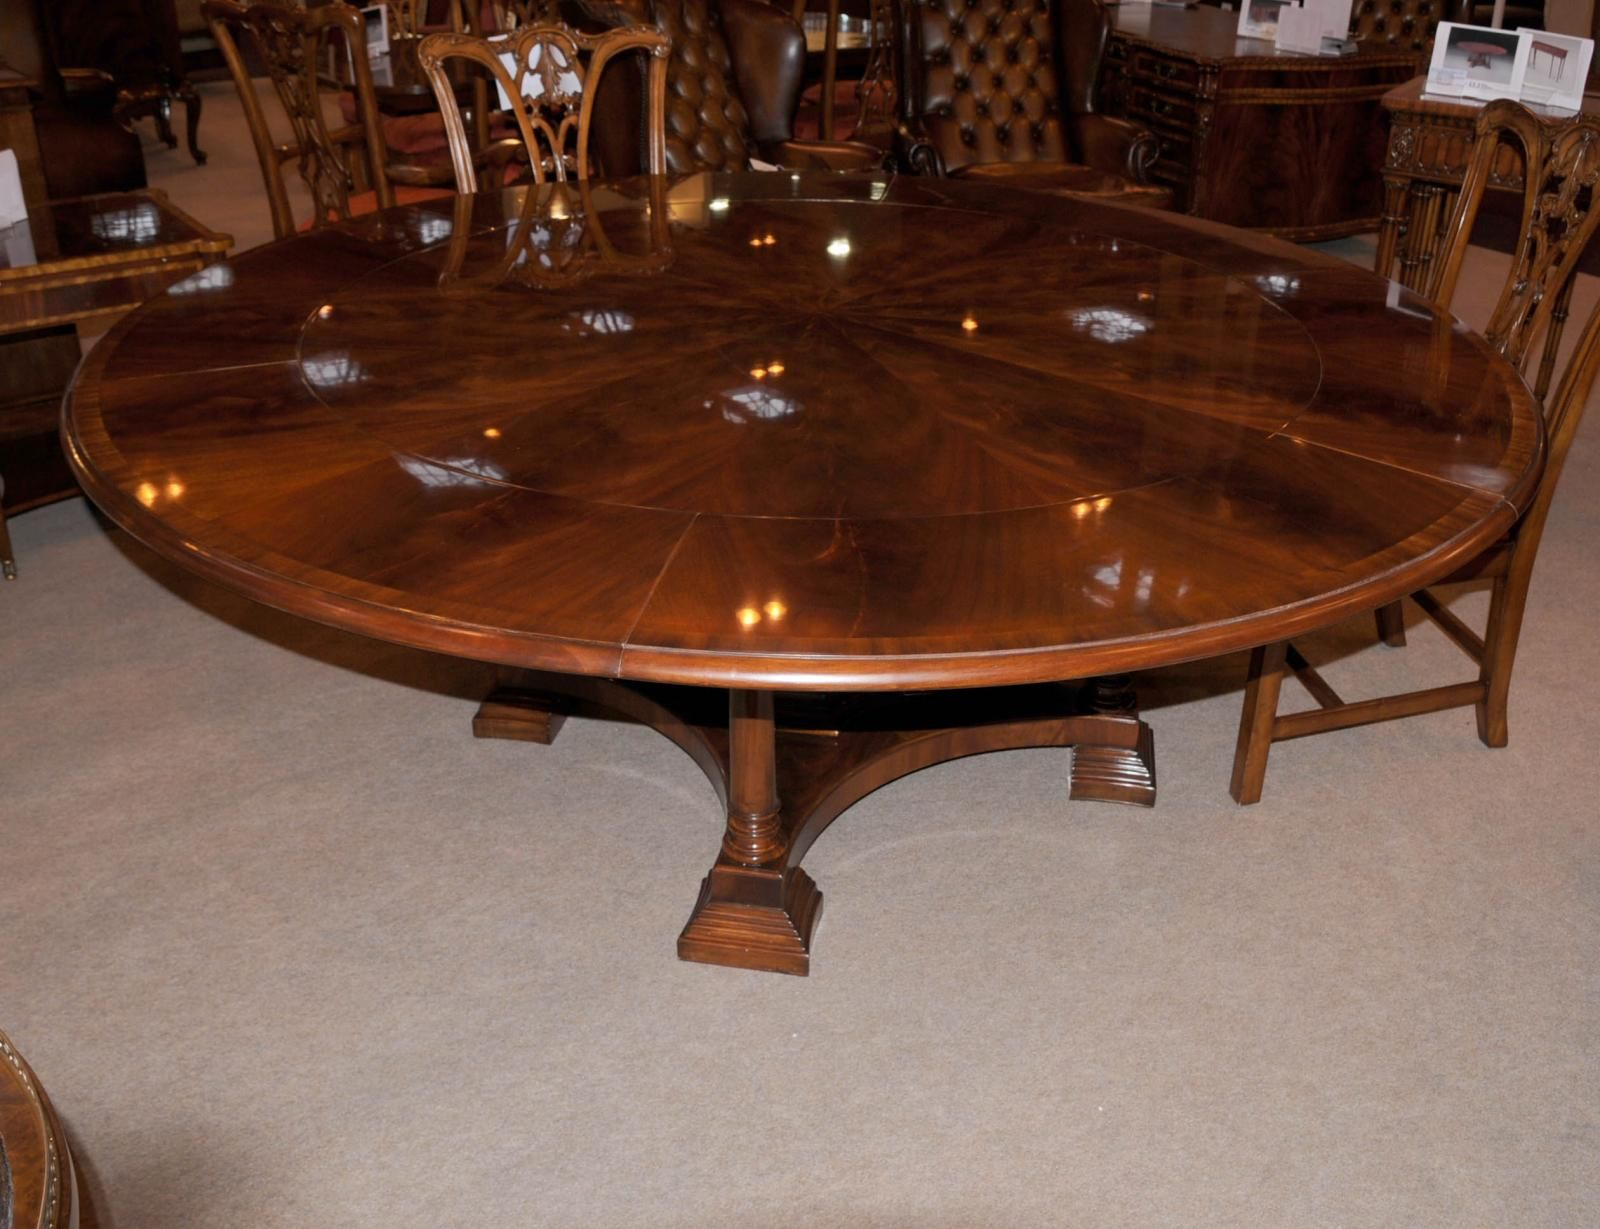 Expandable Round Pedestal Dining Table expandable round dining table ideas - http://tables.backtobosnia